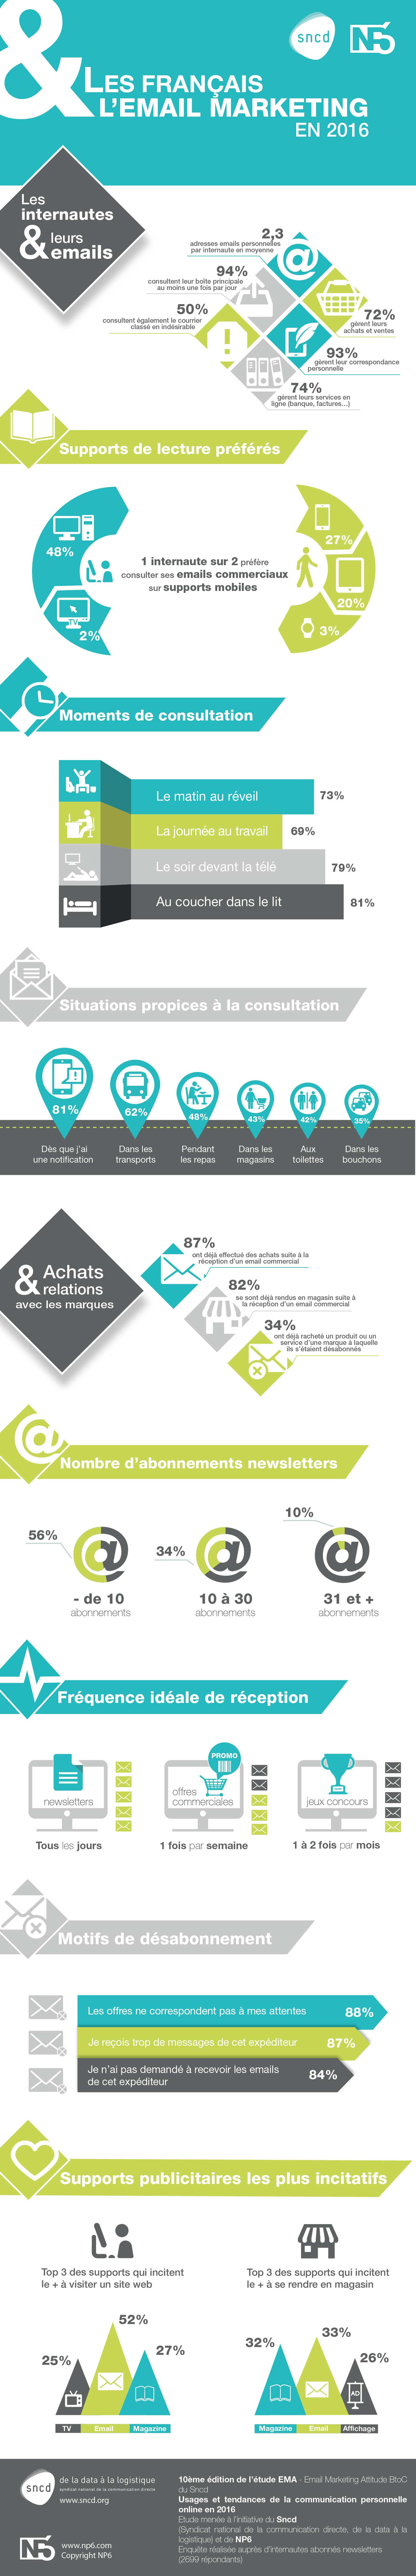 infographie email marketing france